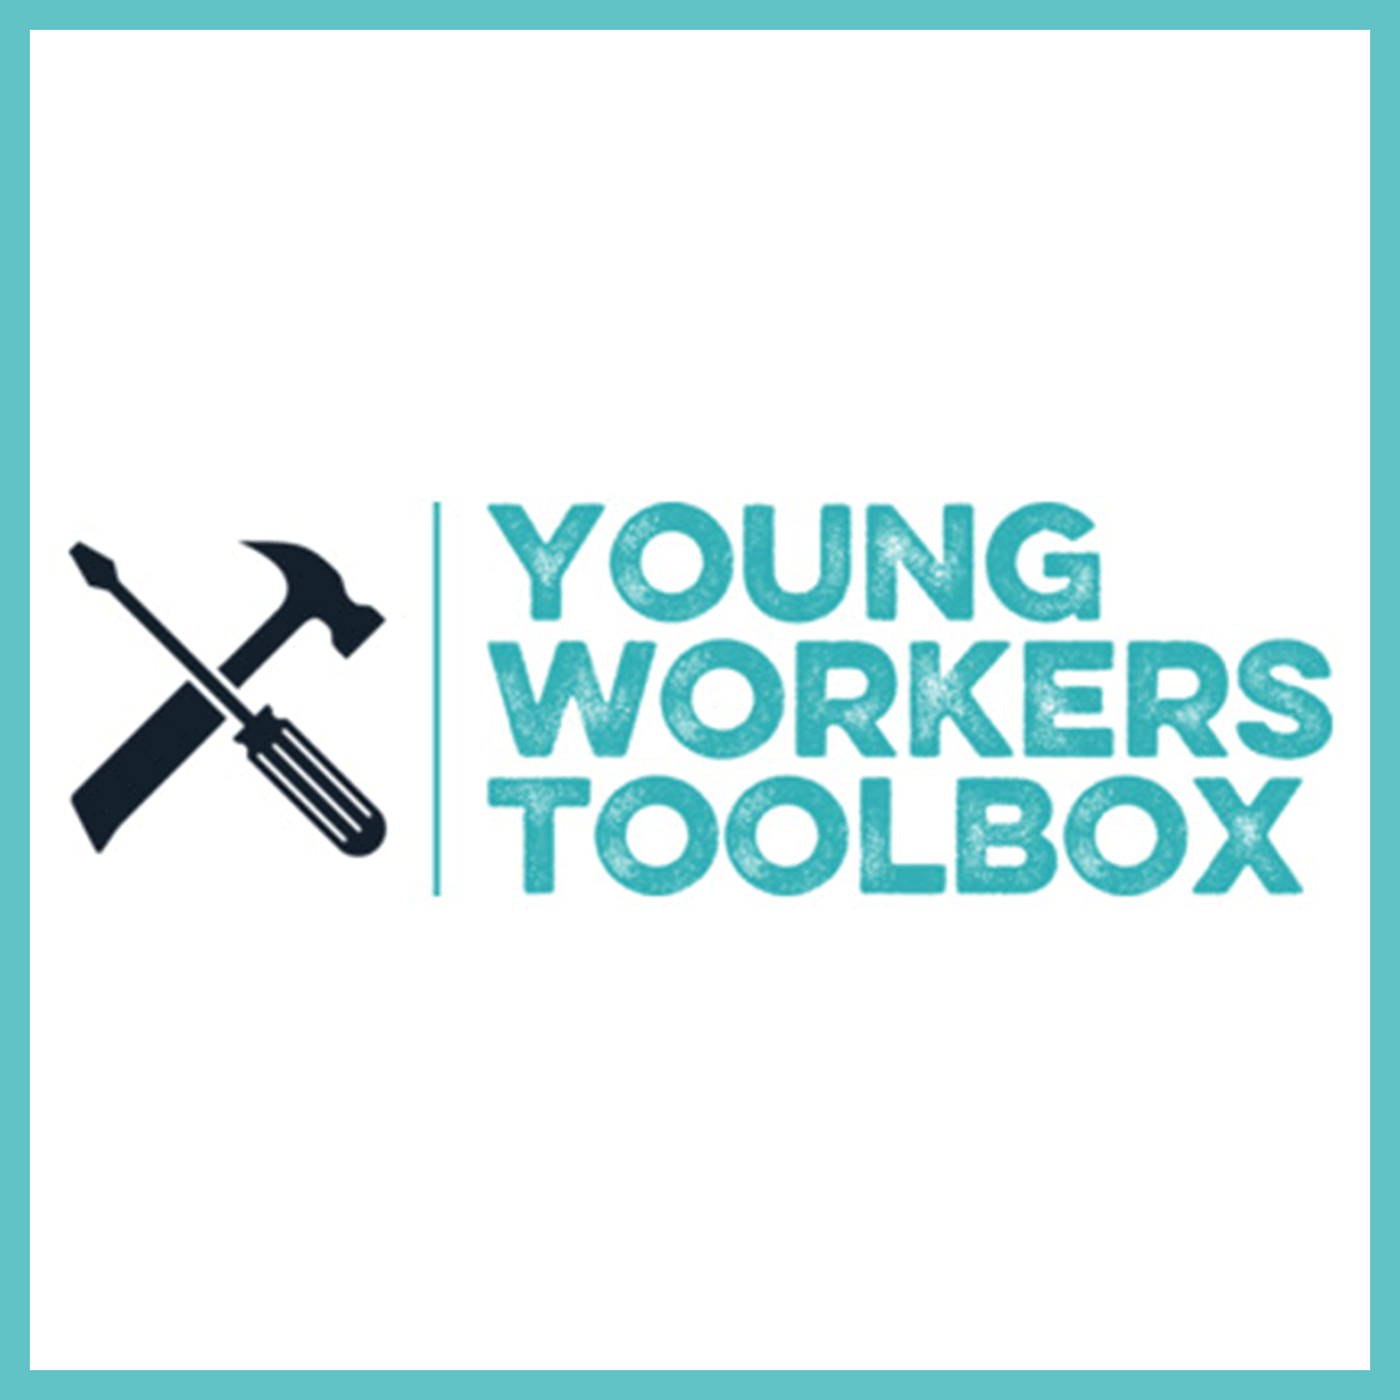 The Young Workers Toolbox